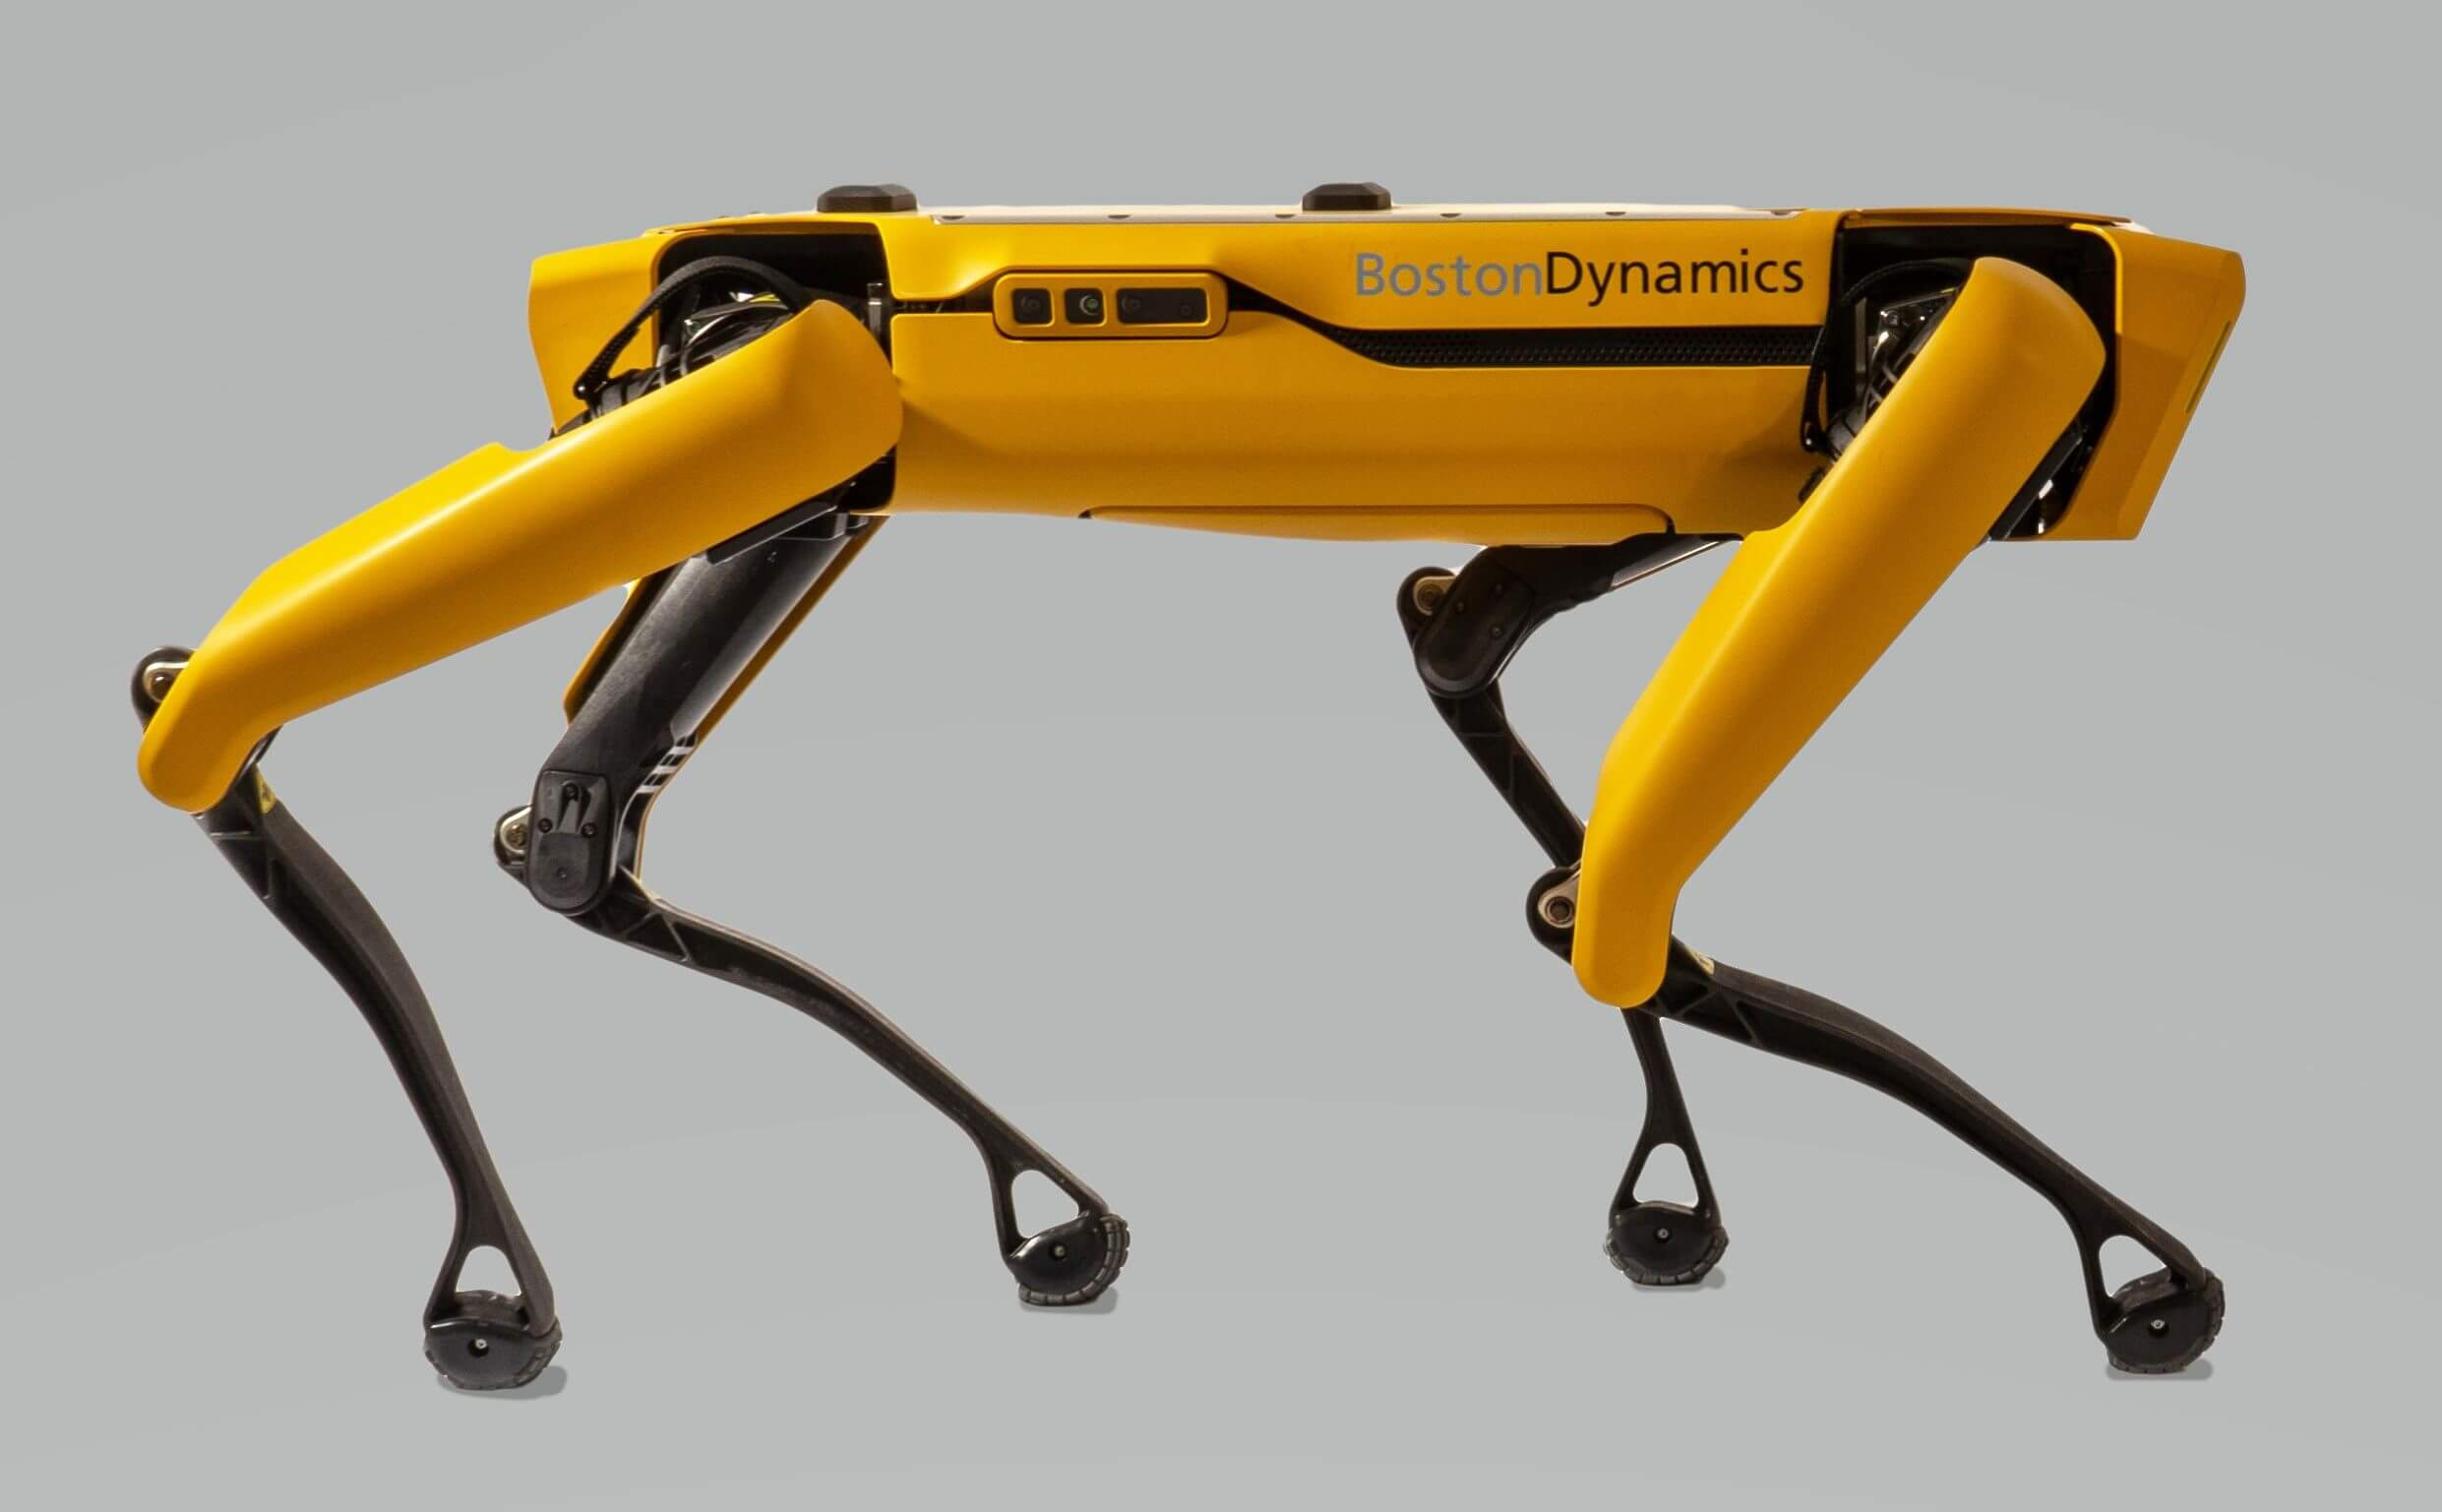 Boston Dynamics' Spot robot is now available to own